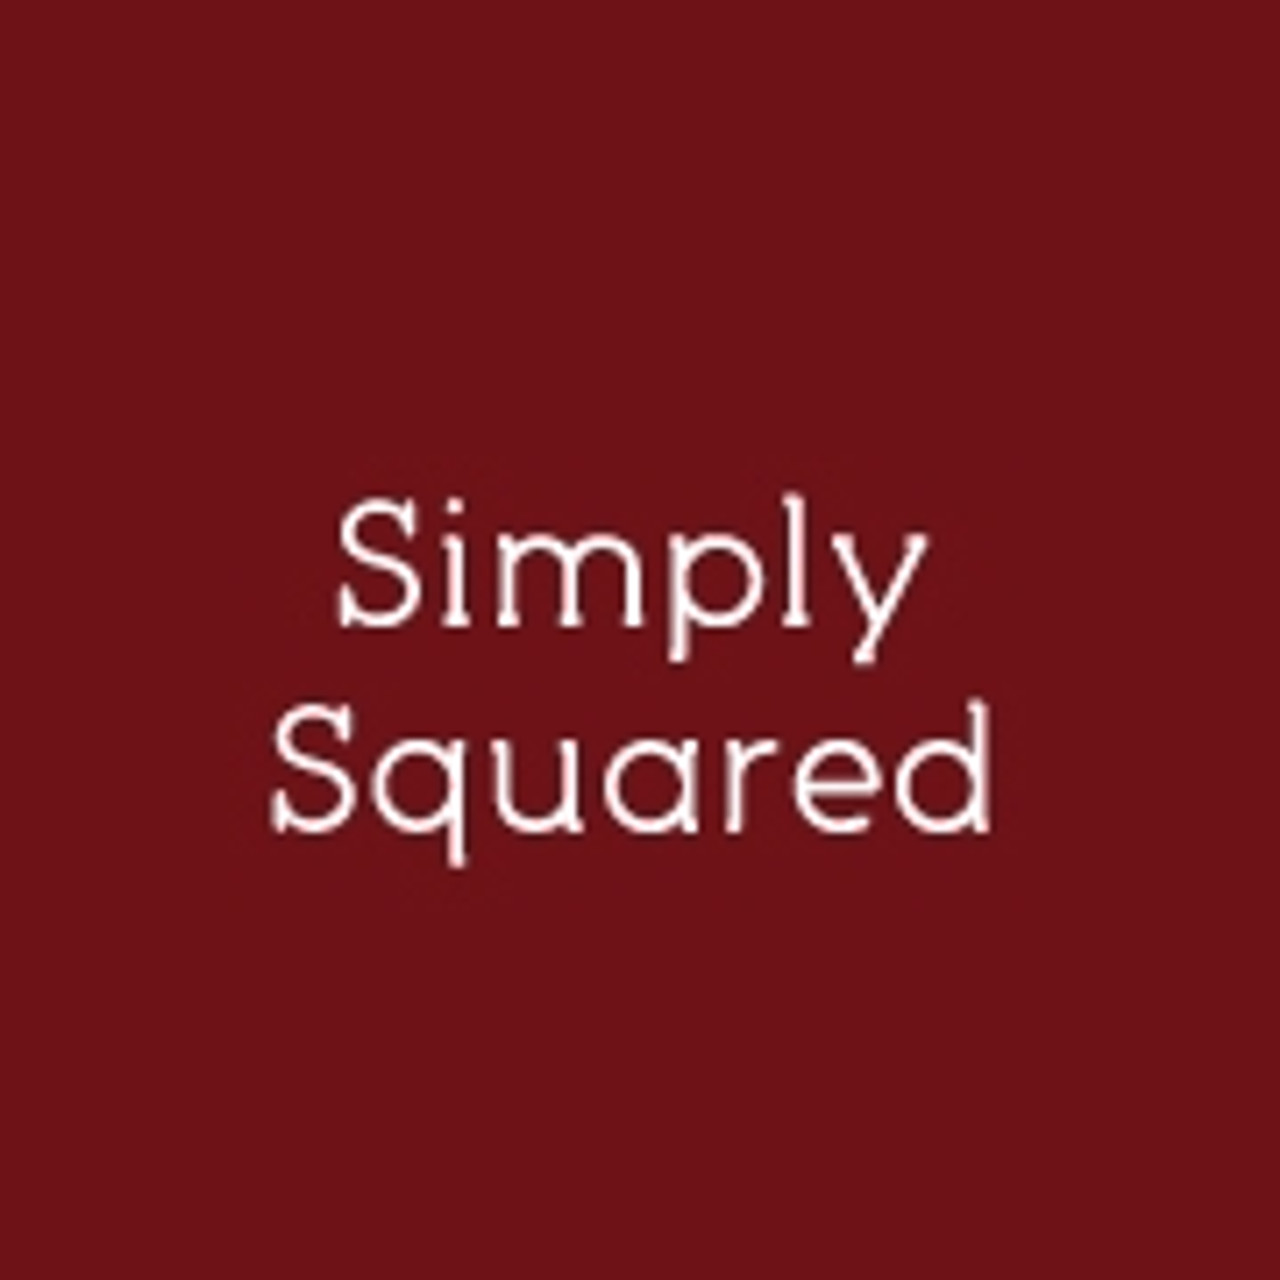 Simply Squared